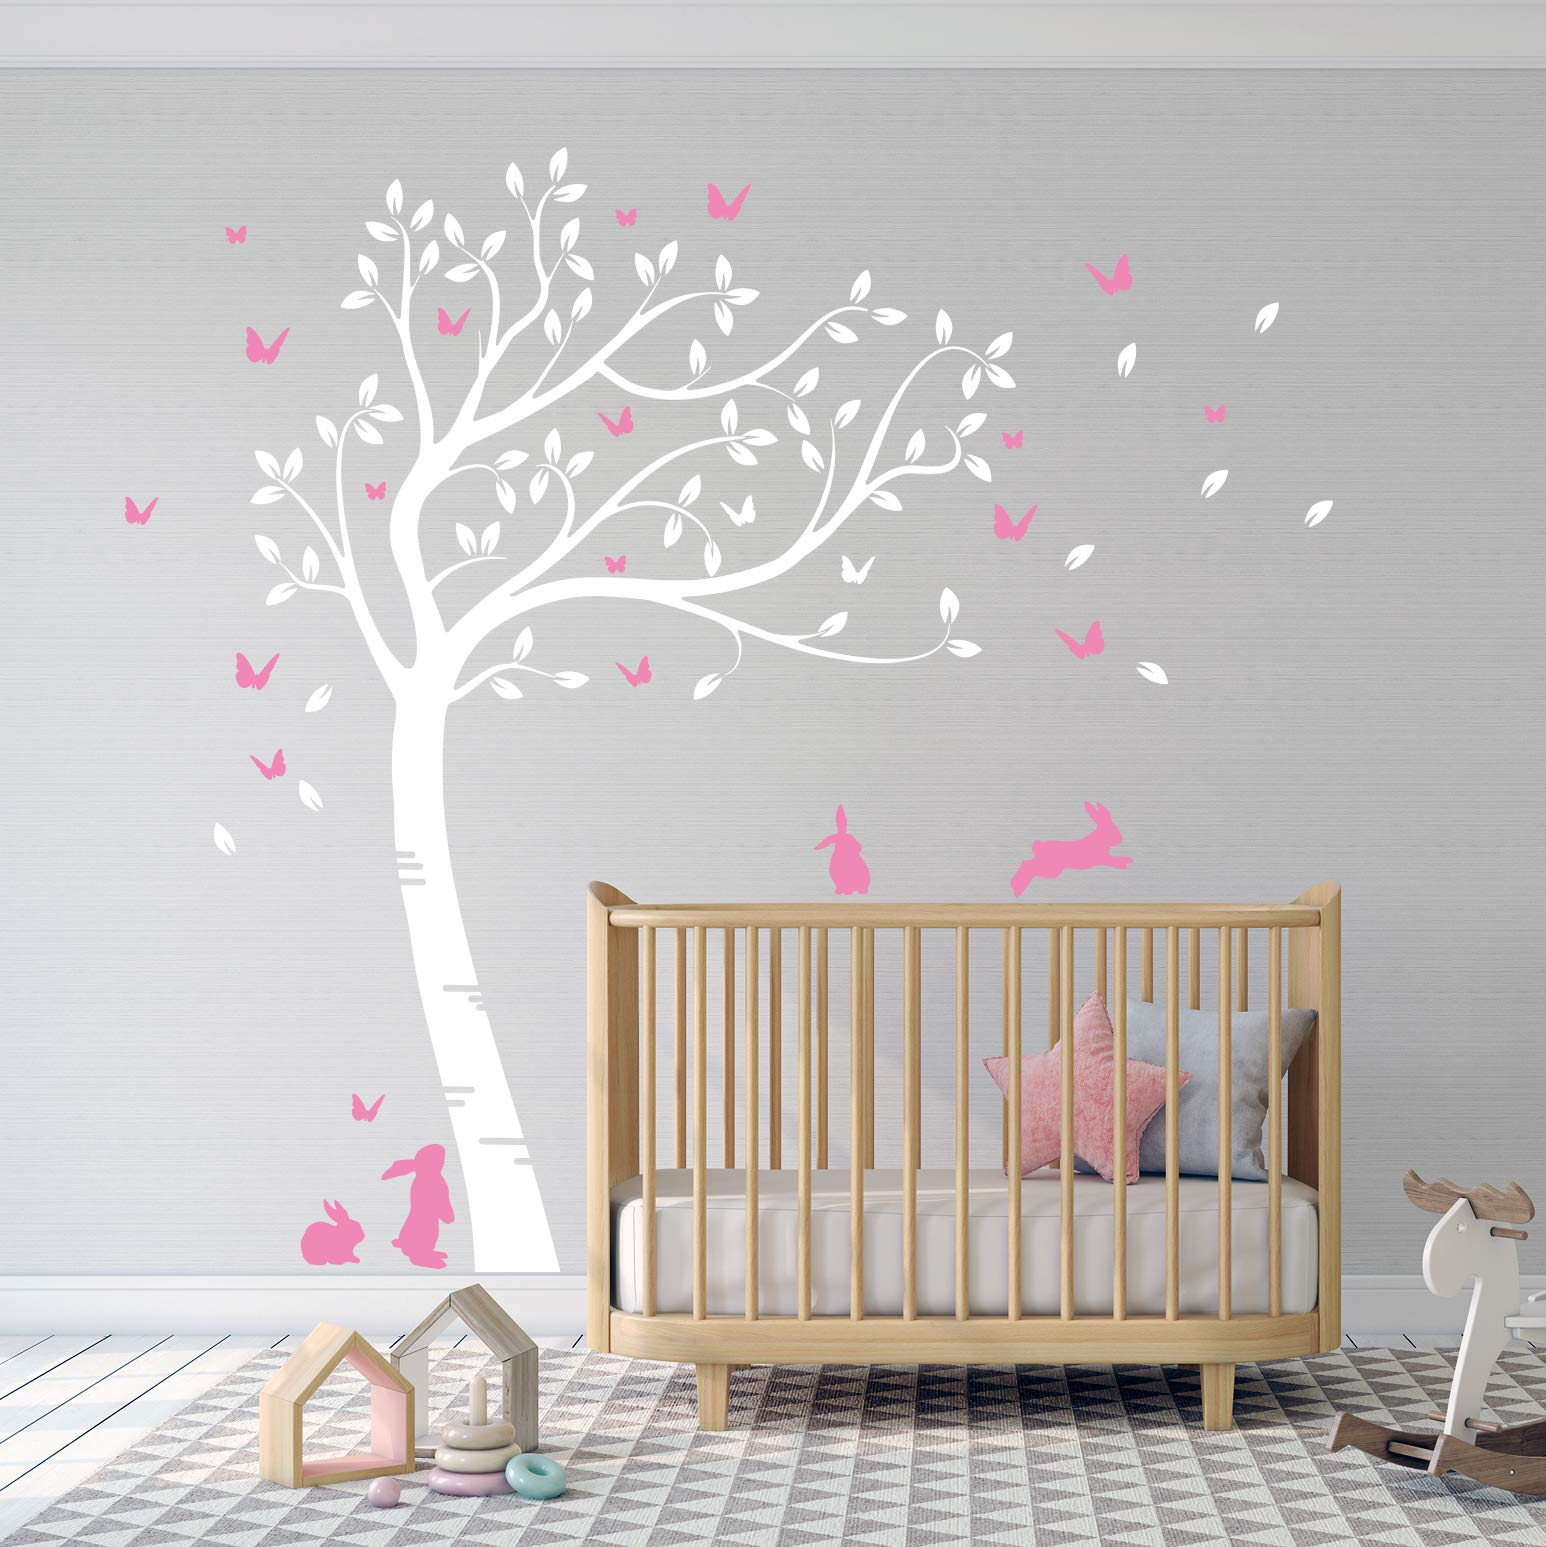 Full Size Beautiful Bunny Rabbits Tree Nursery Room Wall Decal Sticker DD007 (White/Pink) by DesignDivil